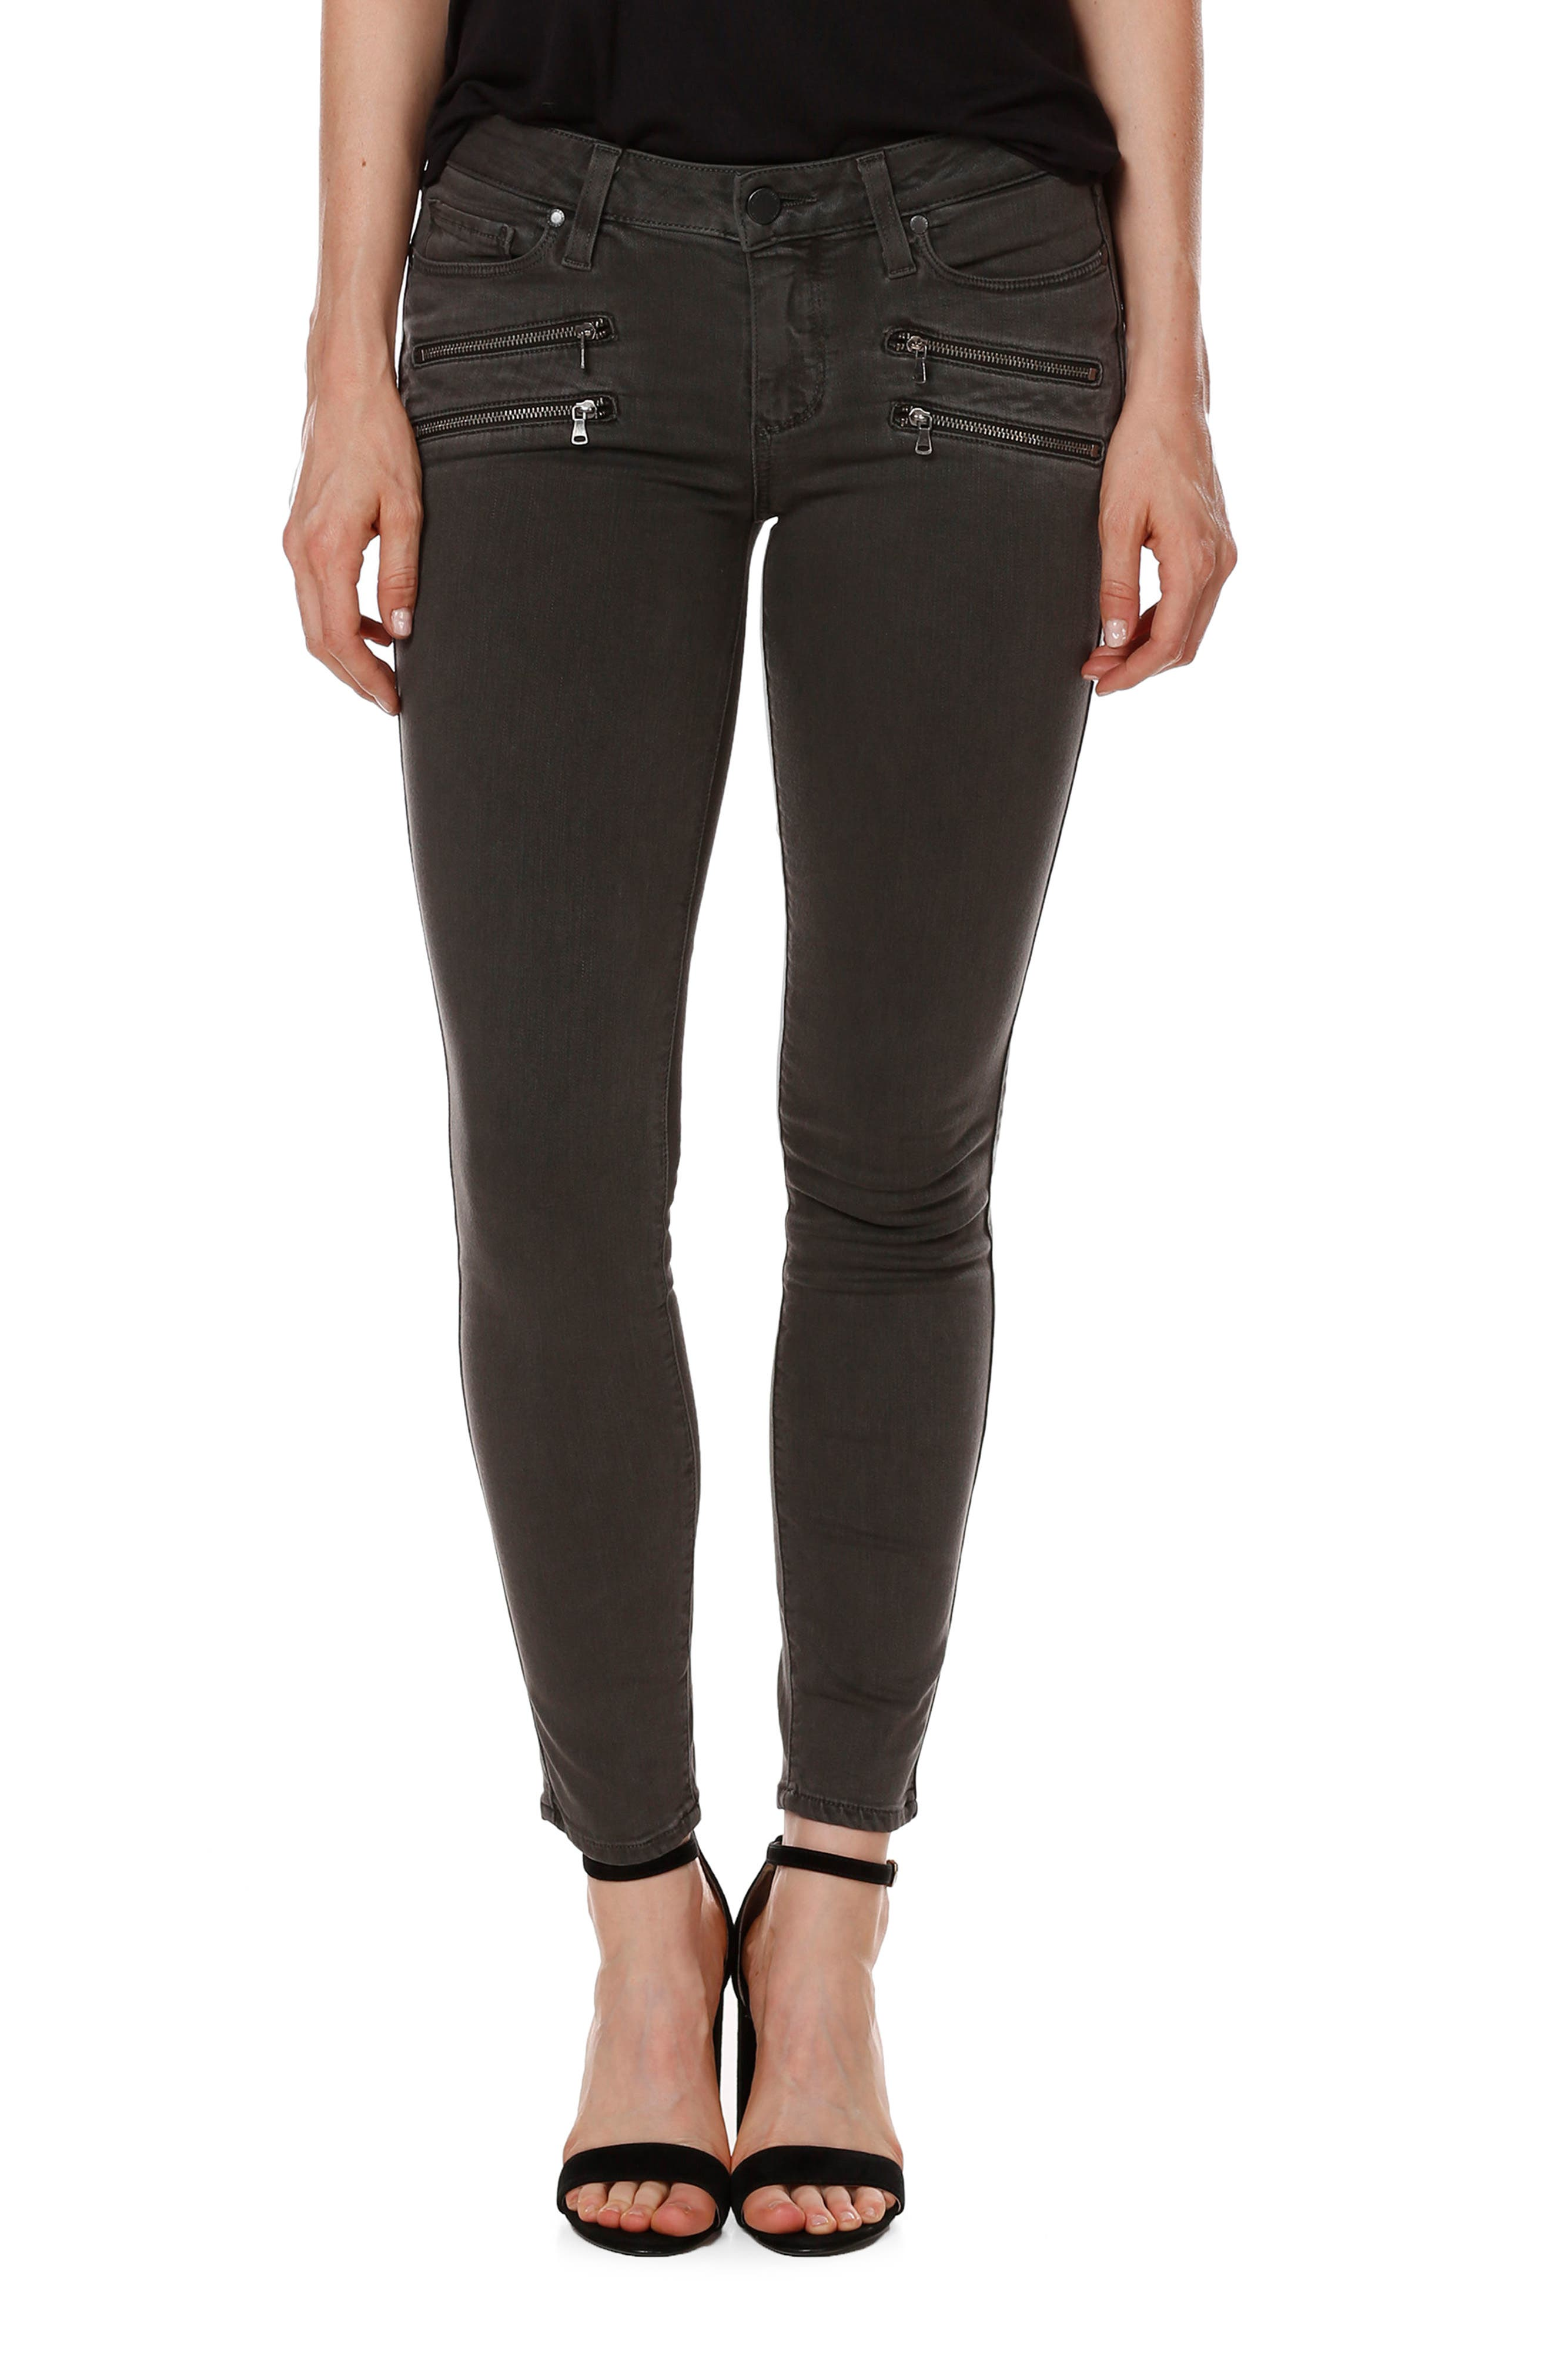 Transcend - Edgemont Ankle Ultra Skinny Jeans,                             Main thumbnail 1, color,                             Coal Grey